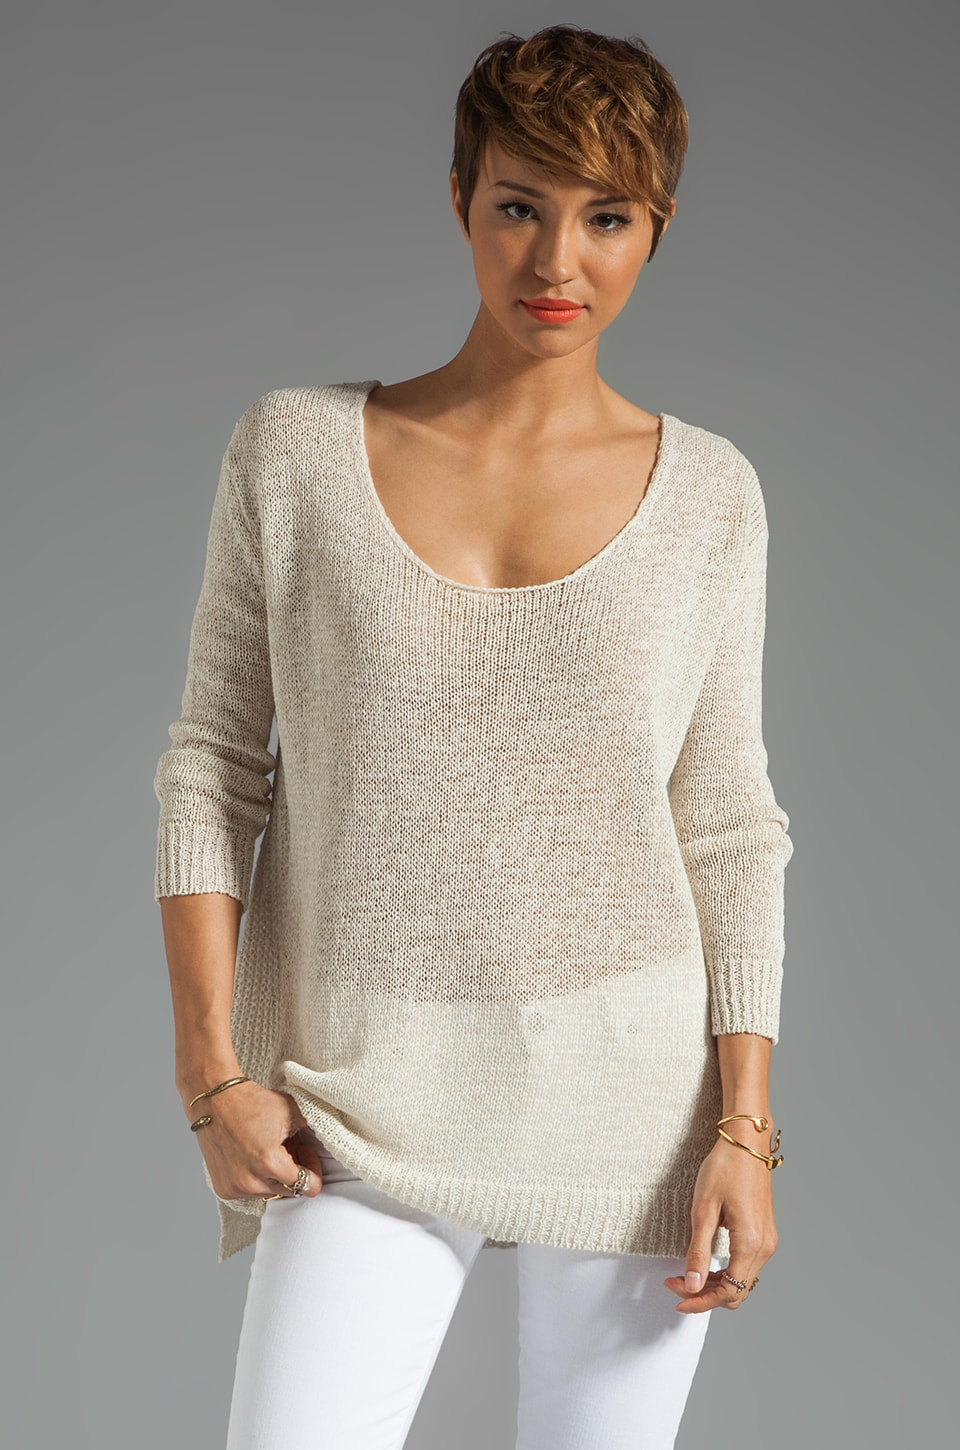 Enza Costa Linen Knit Tape Sweater in Moon White